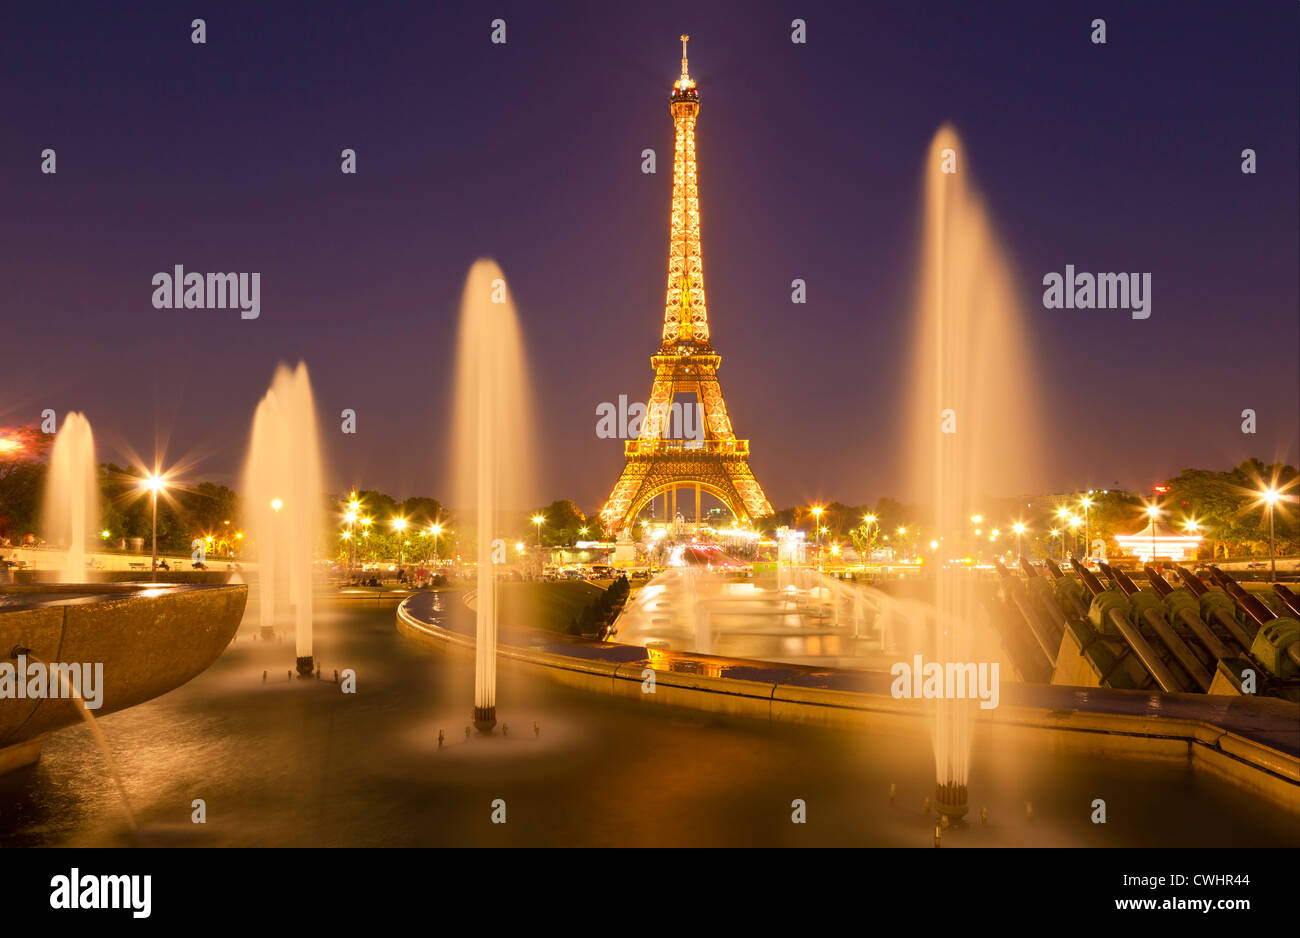 Paris skyline France EU Europe Eiffel tower with Trocadero fountains at night - Stock Image